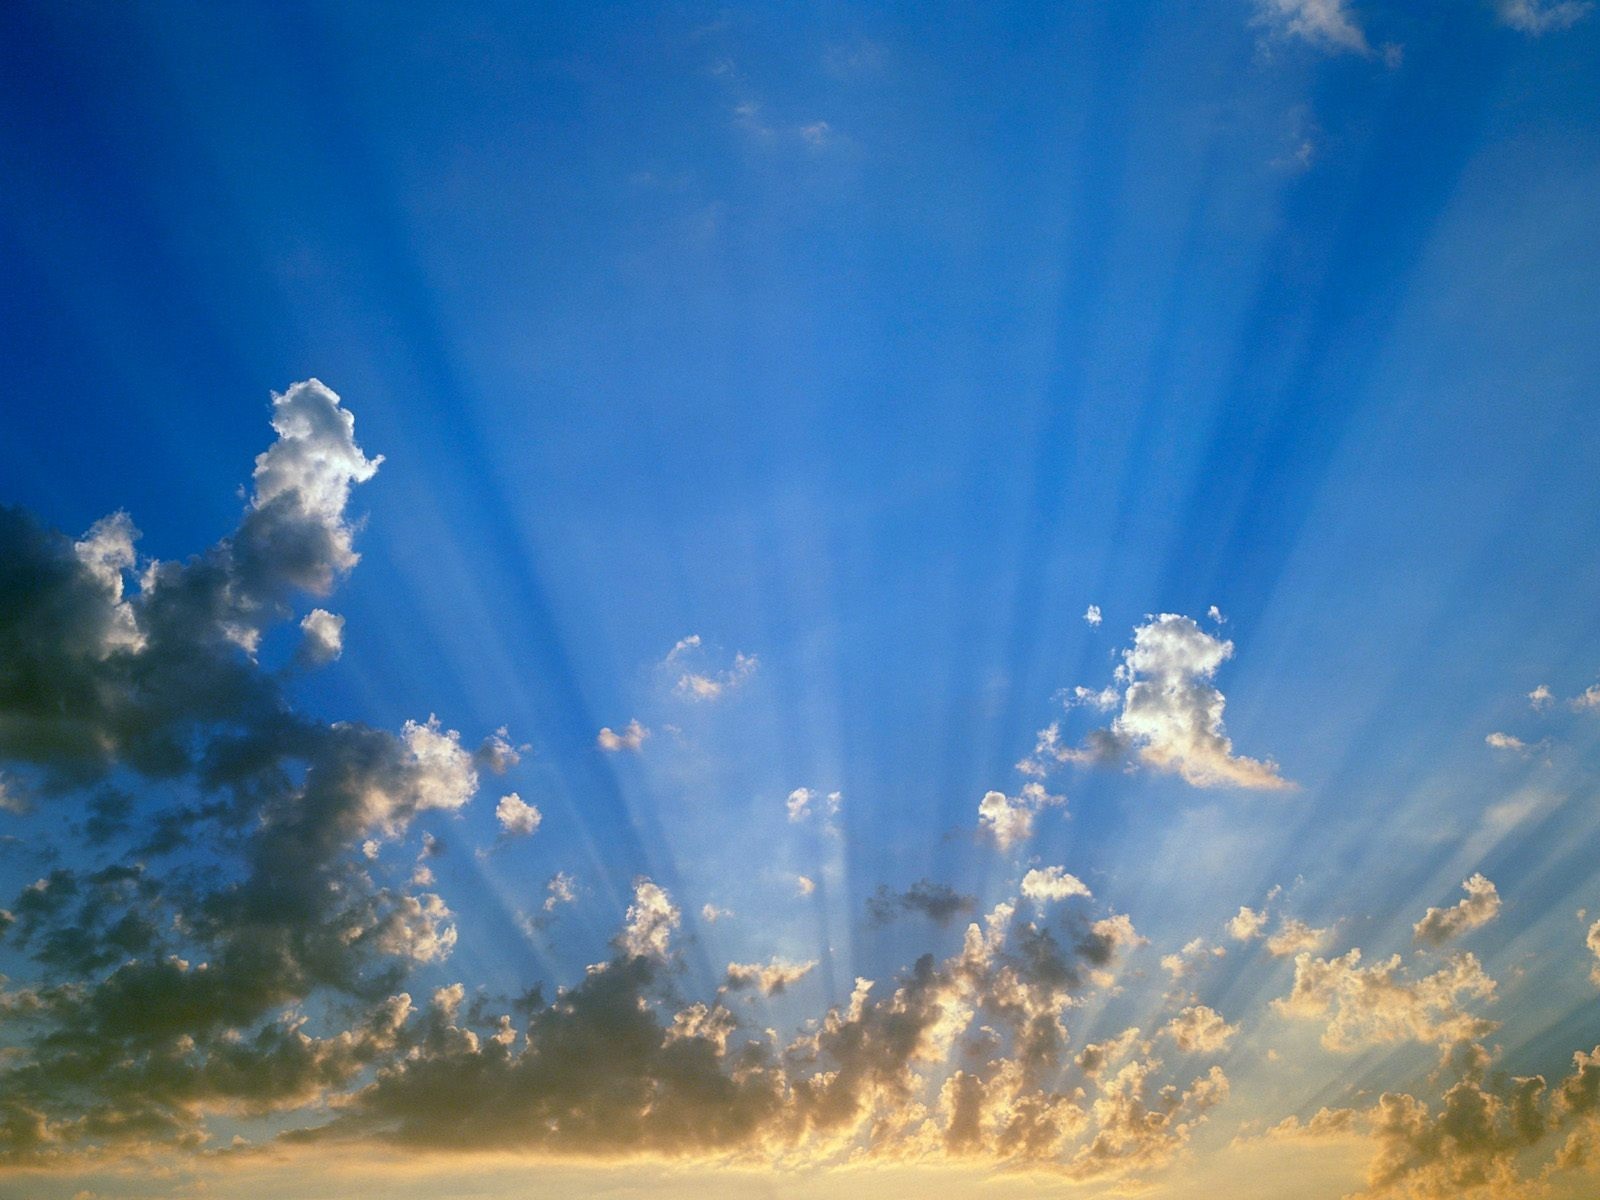 Huge sunrays in a blue sky